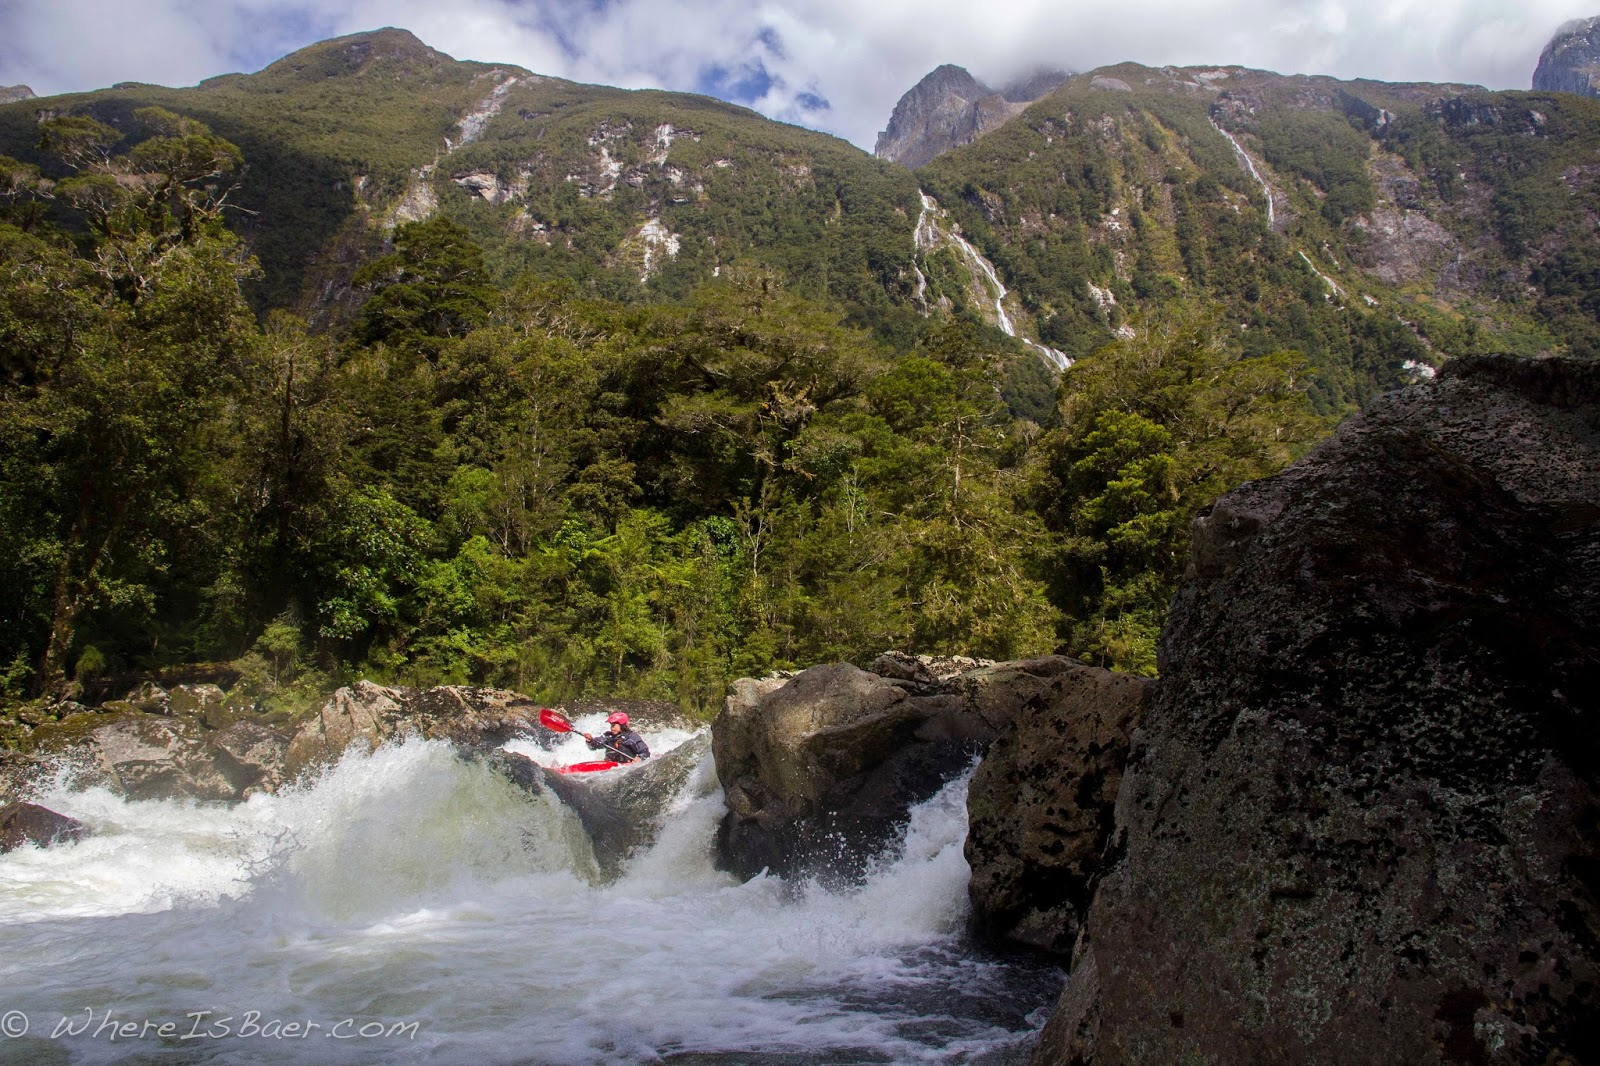 Gonzo looking and feeling small in the Arthur River Valley, NZ, whereisbaer